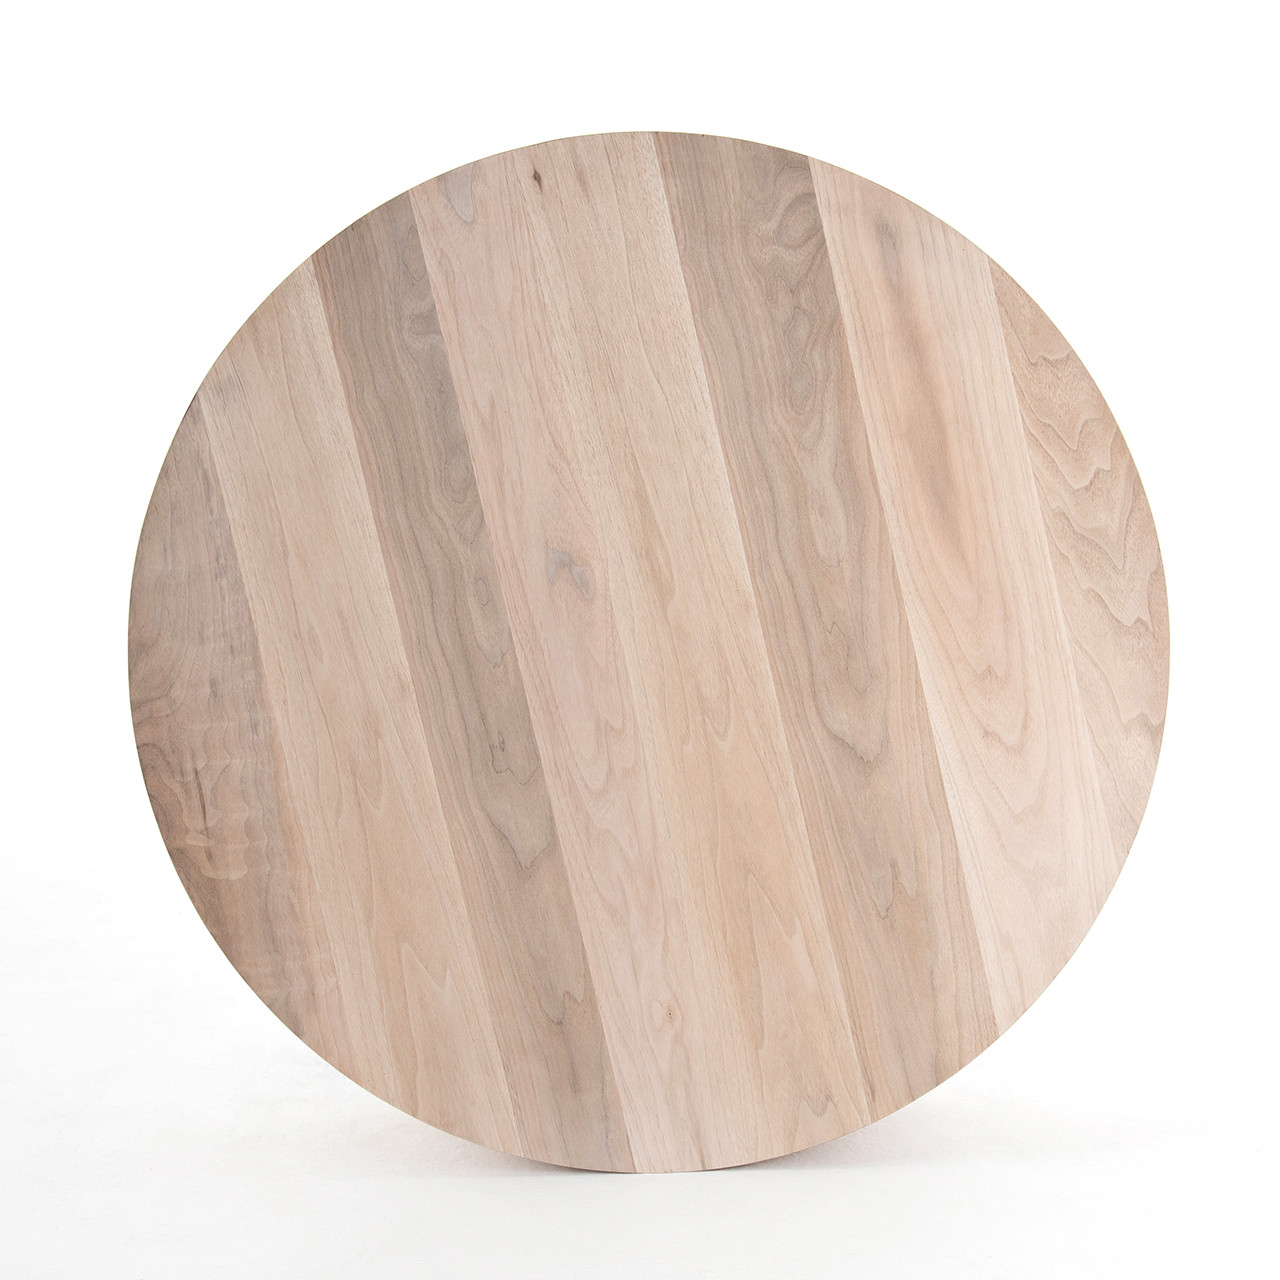 "Henry 40"" Round Coffee Table"